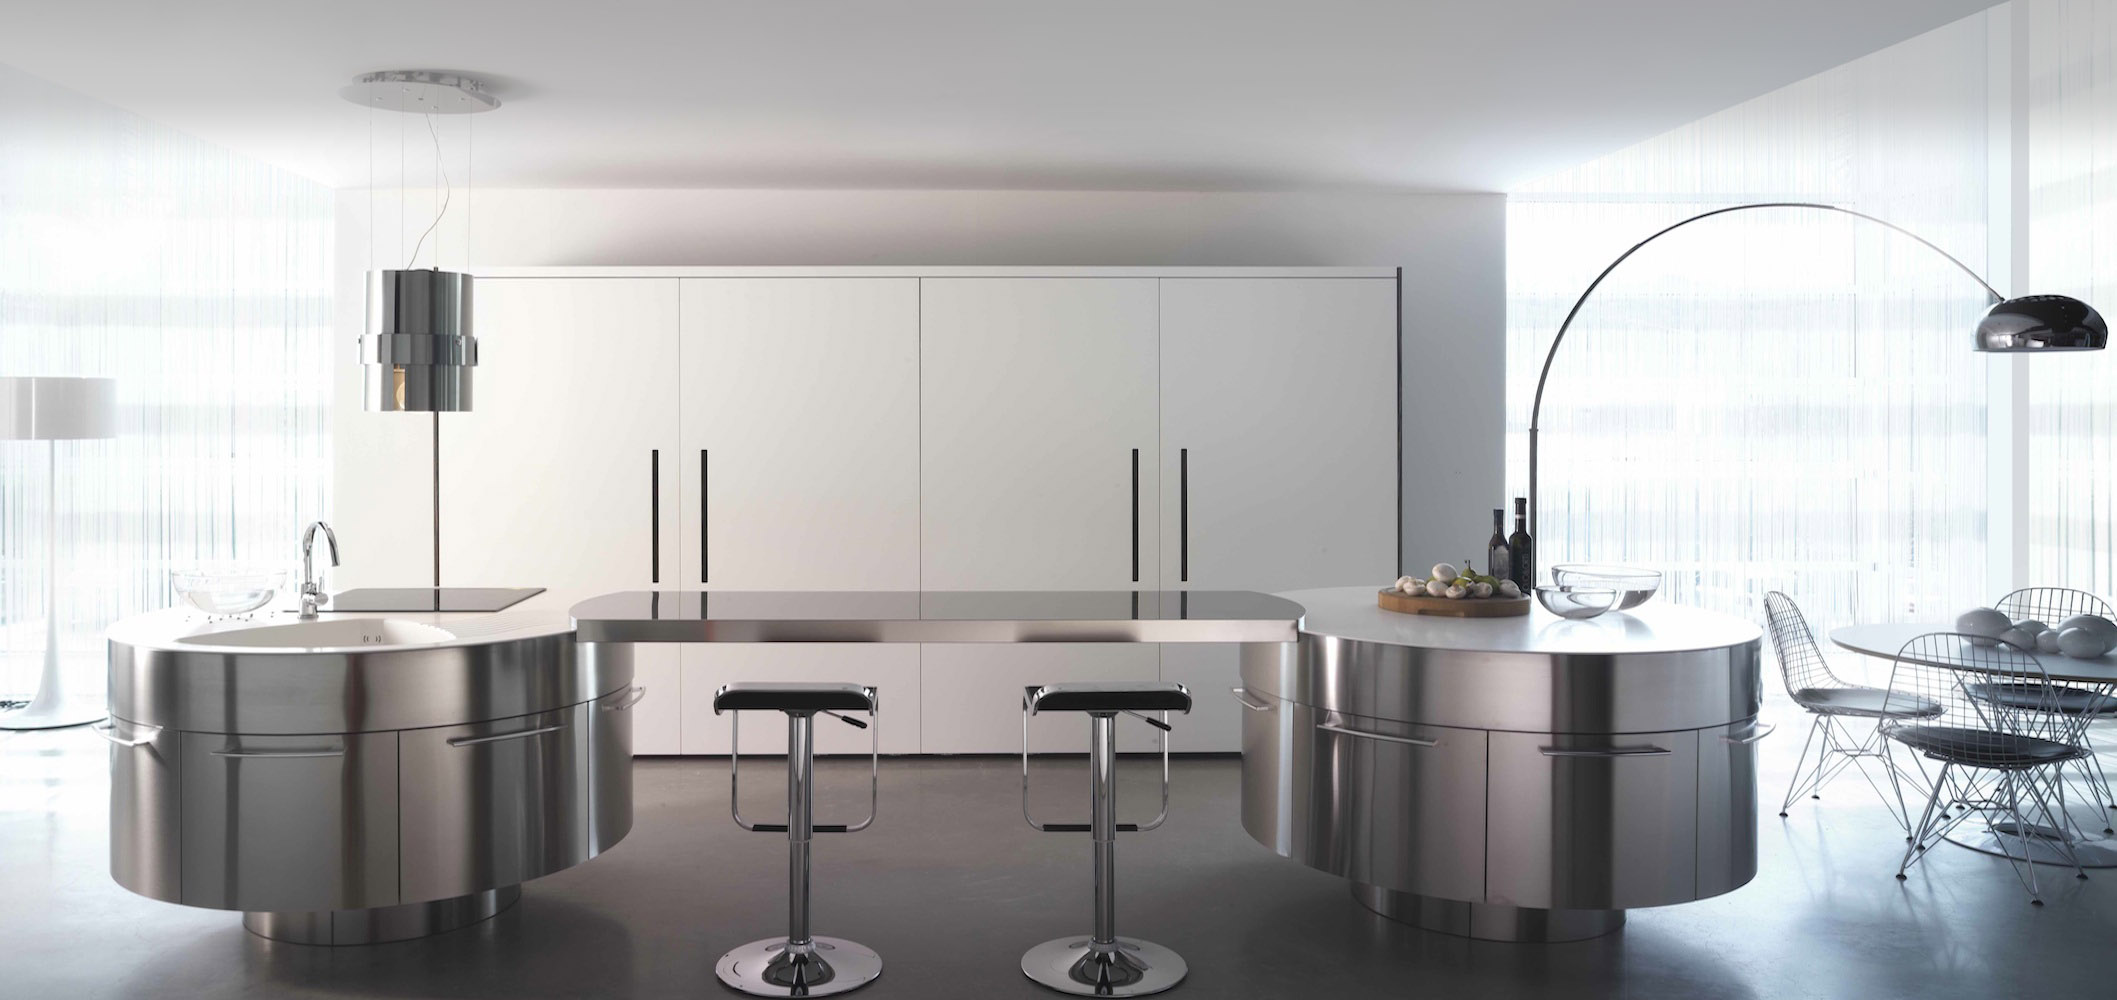 Cuisine D Angle Avec Bar 20 state-of-the-art modern kitchen designsreeva design